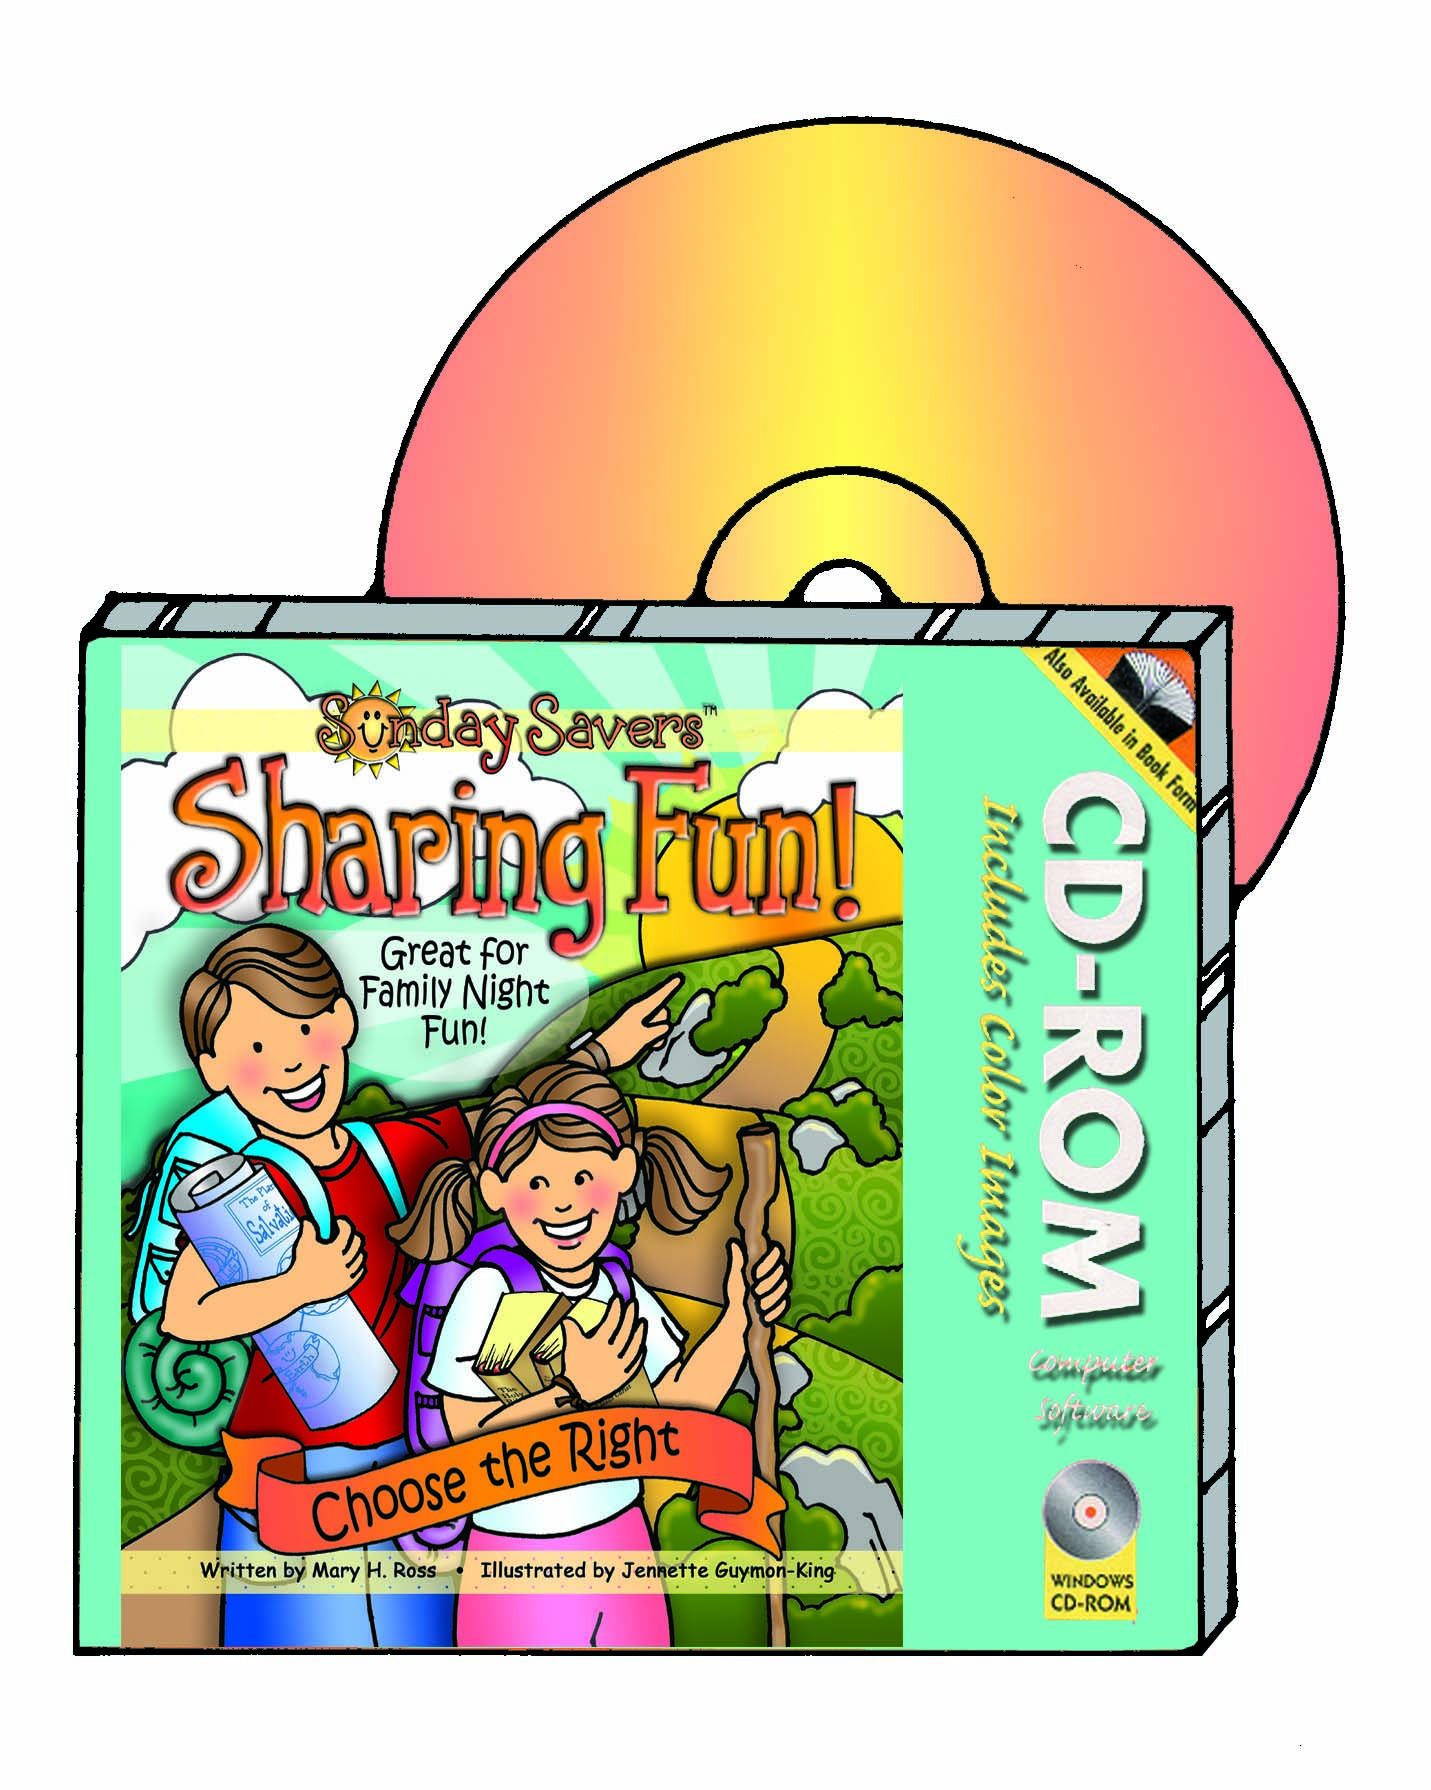 SHARING TIME 2017 Sunday Savers Sharing Fun: Choose the Right CD-ROM to print activiteis for Primary Sharing Time in color or black and white, gospelgrabbag.com